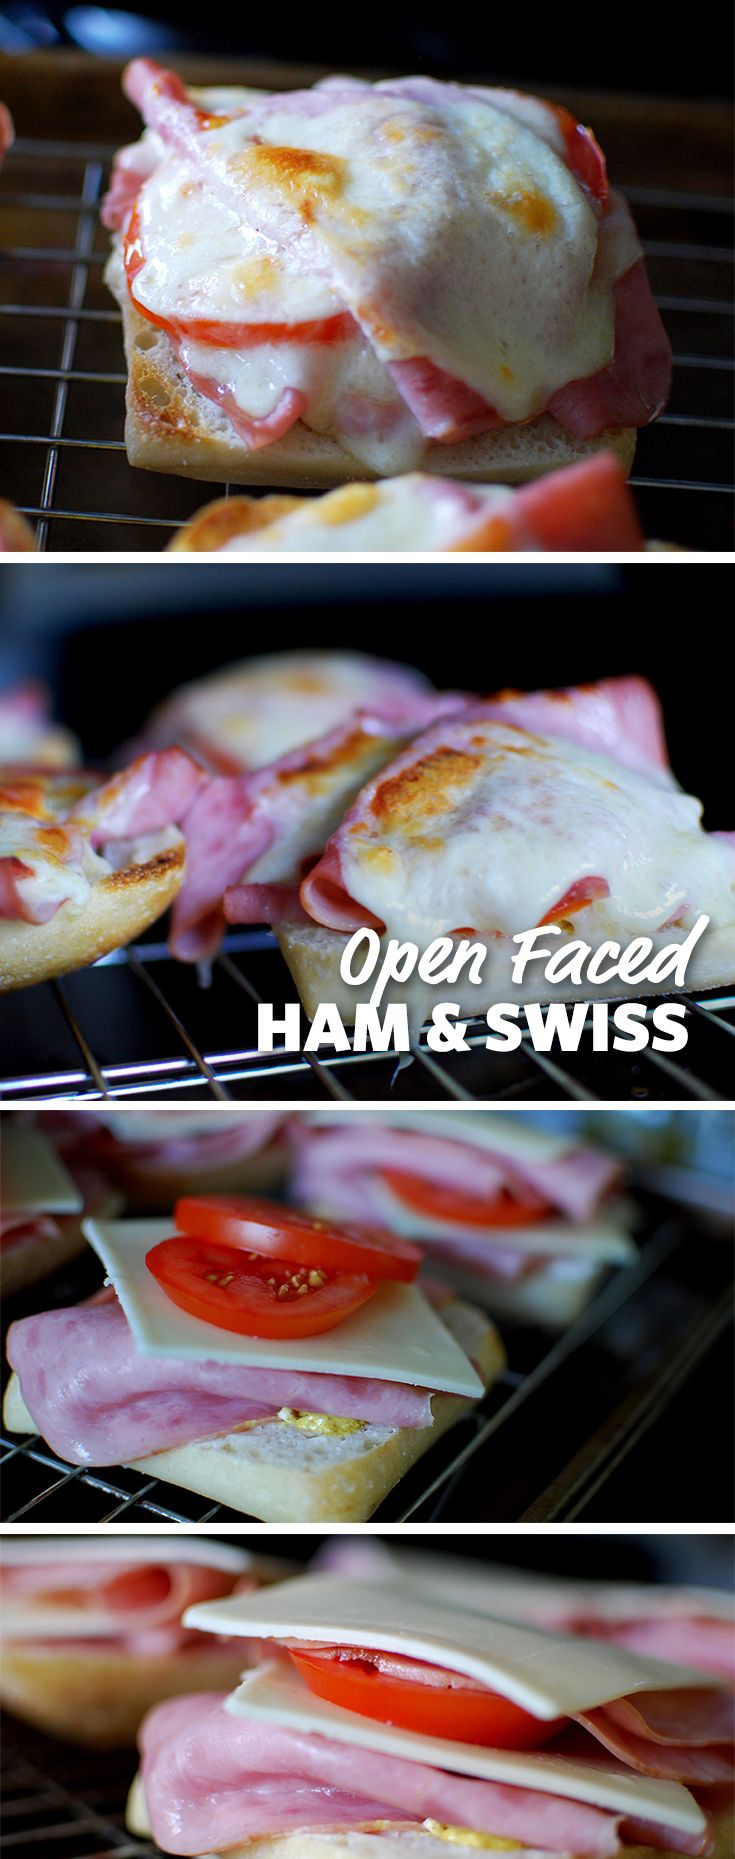 Open Faced Ham & Swiss: A sandwich doesn't have to be piled high with the topping to be tasty. A hot, cheesy melted sandwich with tomatoes is a quick and easy lunch! #FoodLion